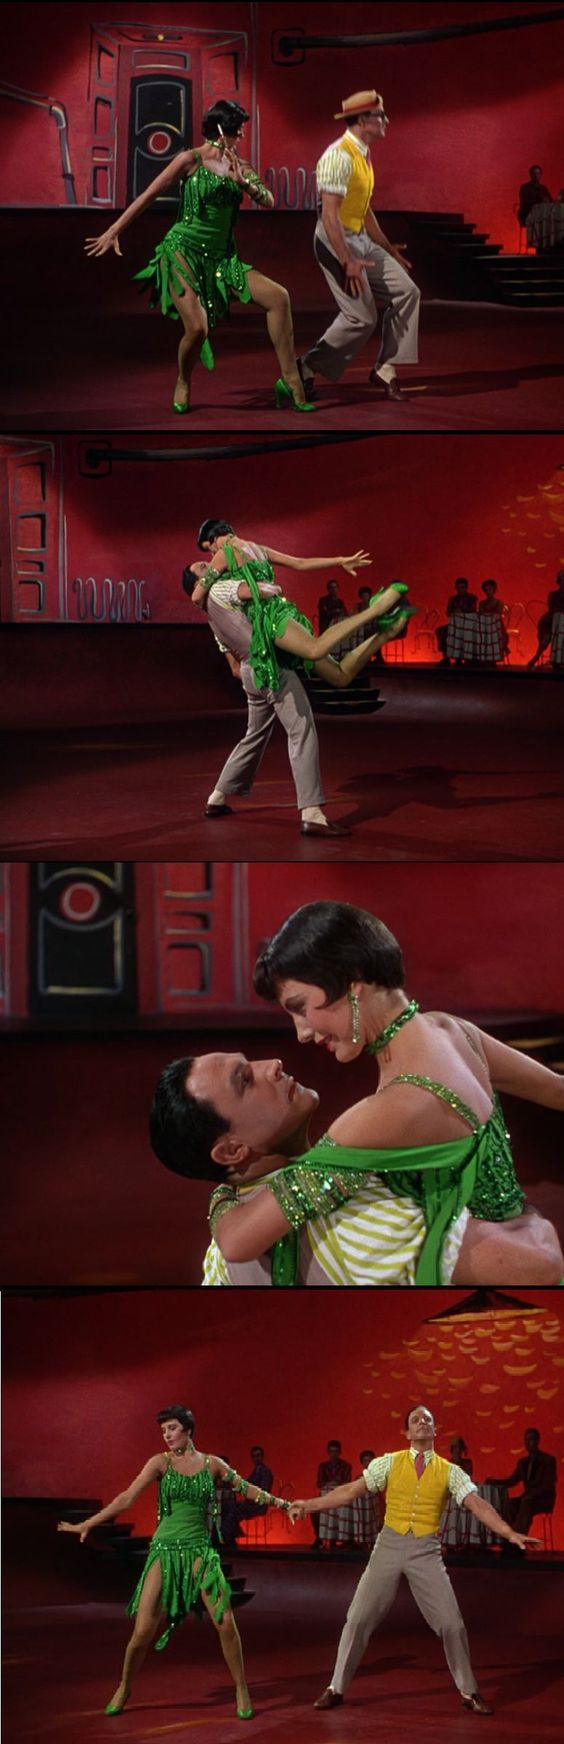 "Cyd Charisse and Gene Kelly in a delicious and sensuous ballet in ""Singin' in the Rain"", 1953"